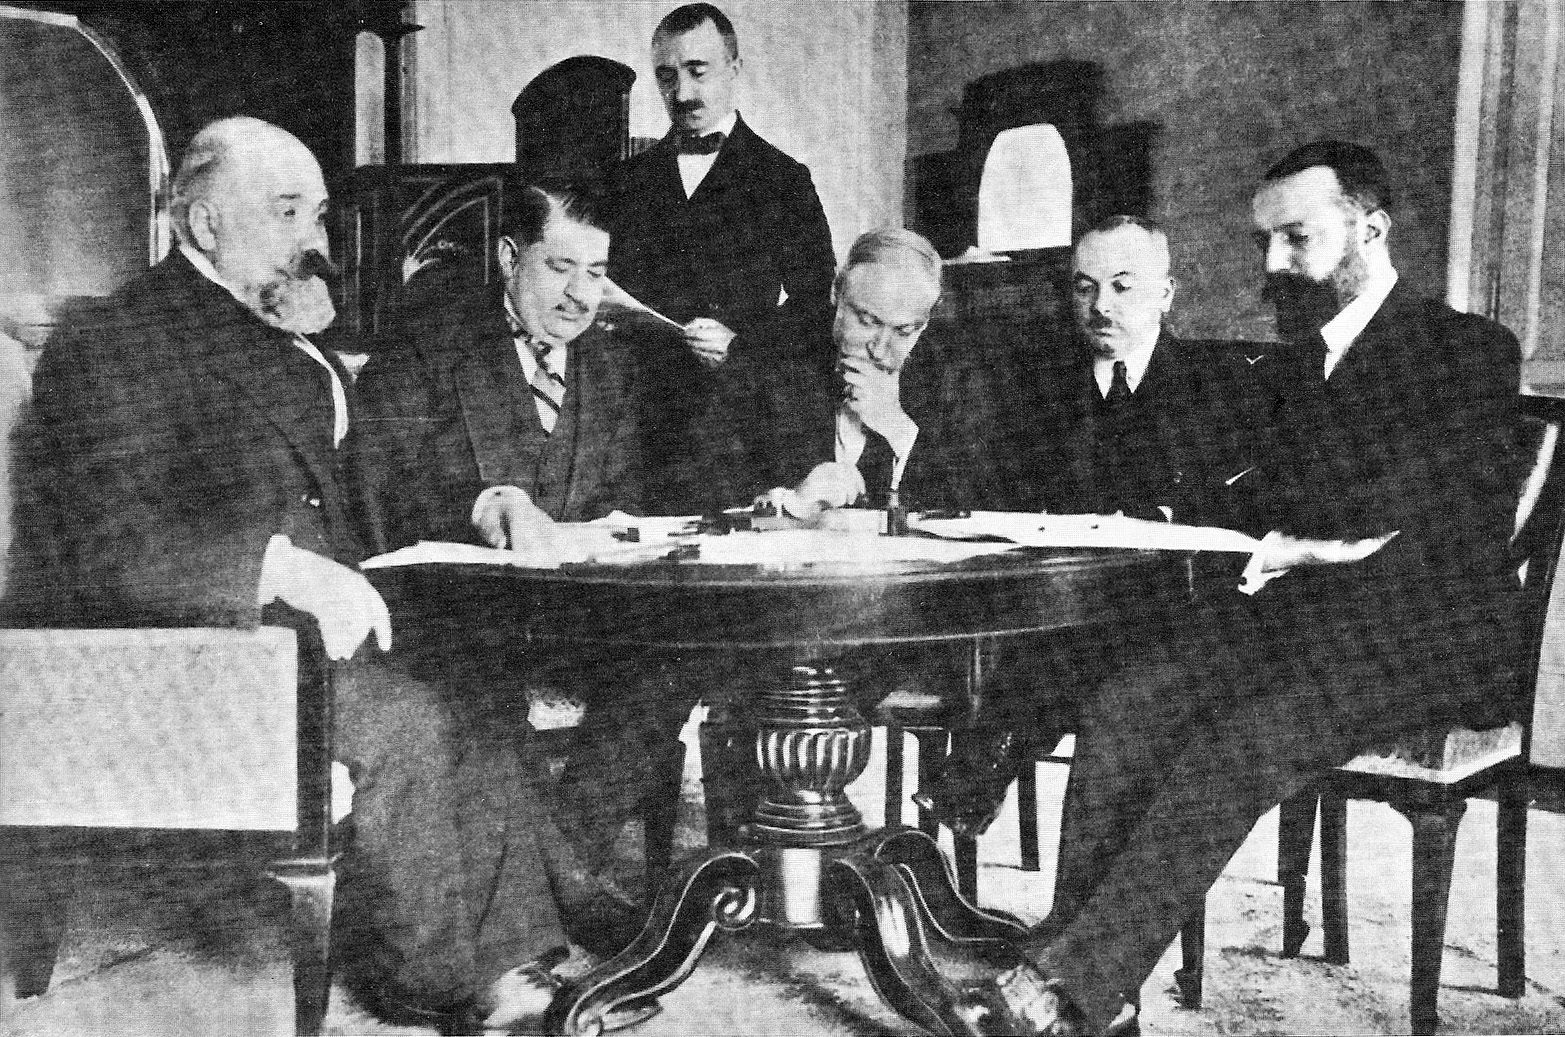 http://upload.wikimedia.org/wikipedia/commons/8/84/Treaty_of_Lausanne_1912.jpg